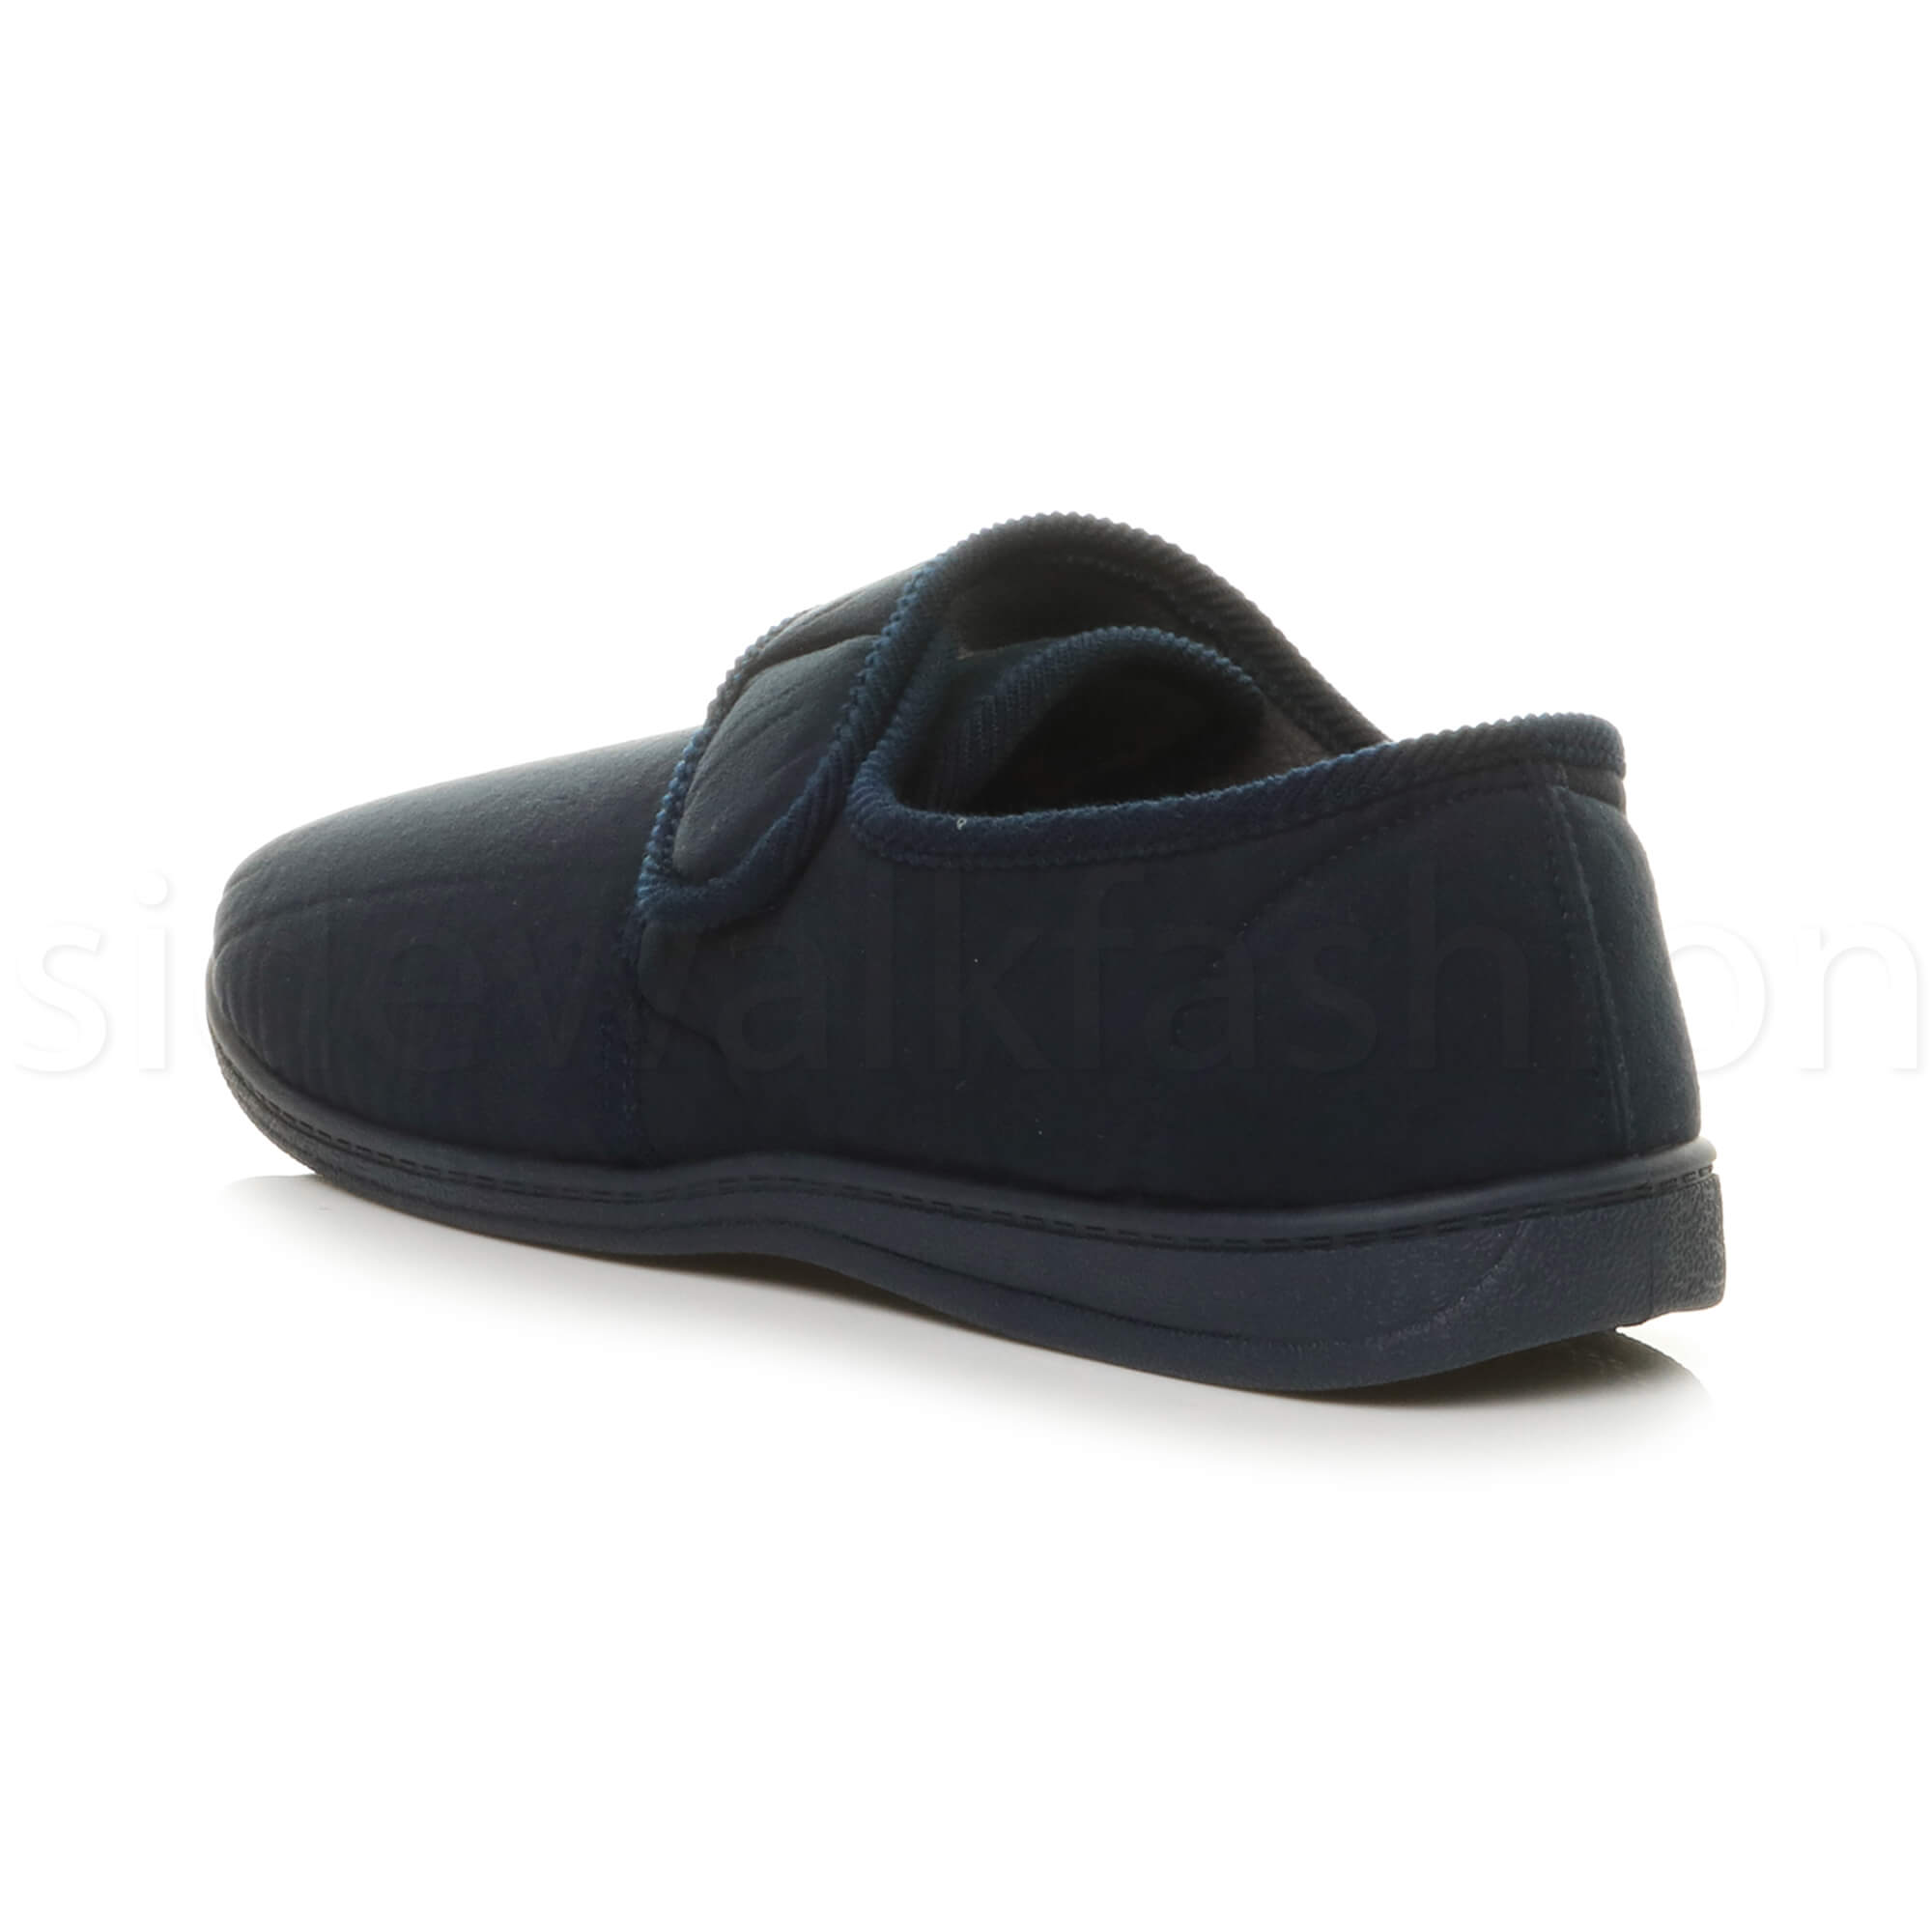 MENS-TOUCH-CLOSE-COMFORT-DIABETIC-ORTHOPAEDIC-SLIPPERS-INDOOR-HOUSE-SHOES-SIZE miniatuur 21